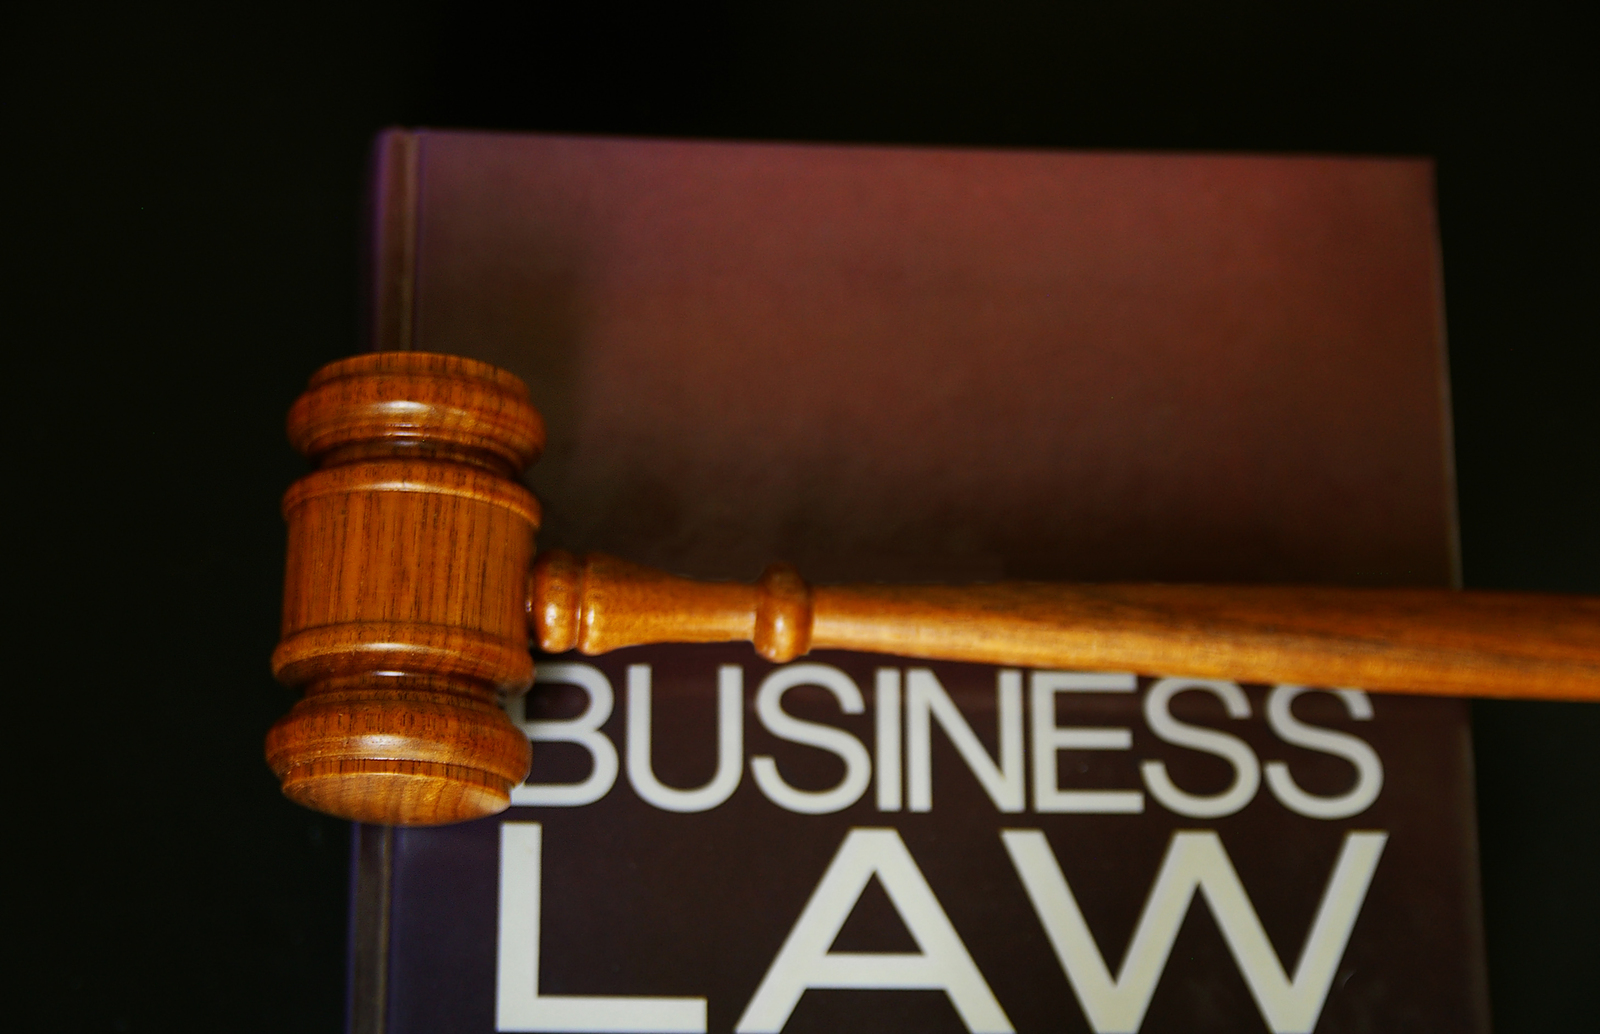 Keys to starting a successful business in law